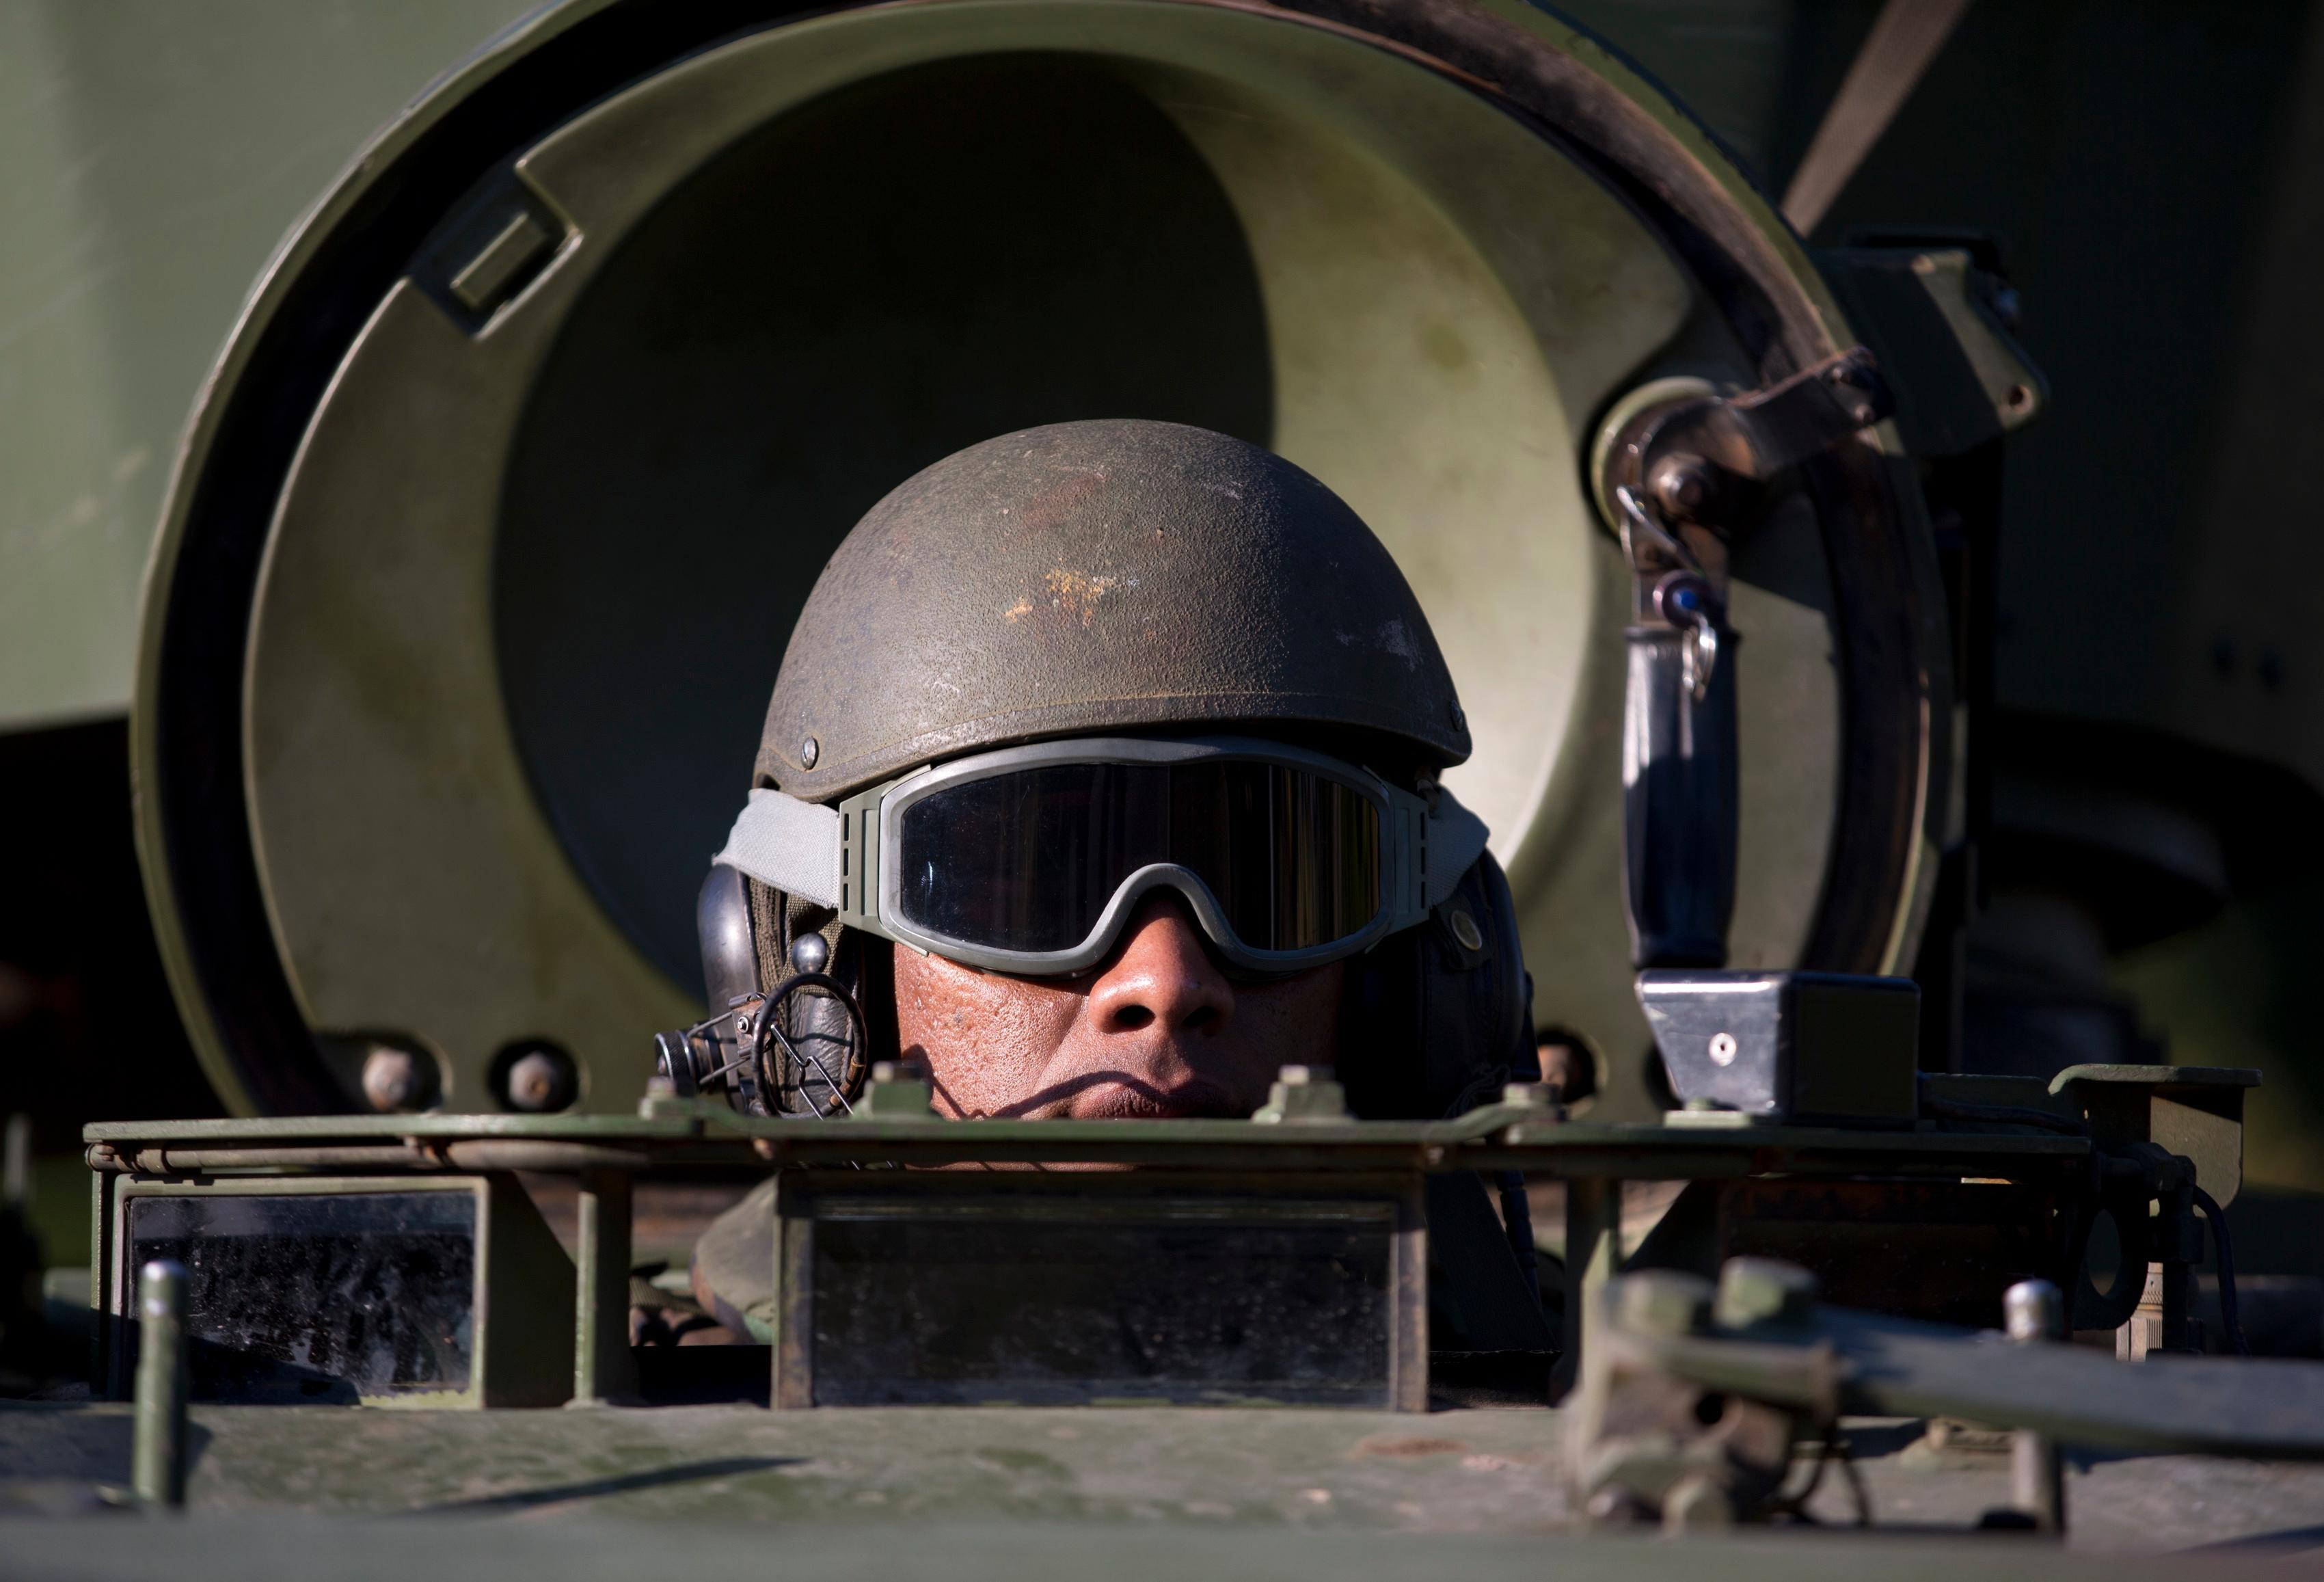 A Navy soldier patrols in an armored vehicle near Santos Dumont Airport in Rio de Janeiro, Brazil, Friday, July 28, 2017.  Thousands of Brazilian soldiers have begun patrolling in Rio de Janeiro amid a spike in violence. (AP Photo/Silvia Izquierdo)